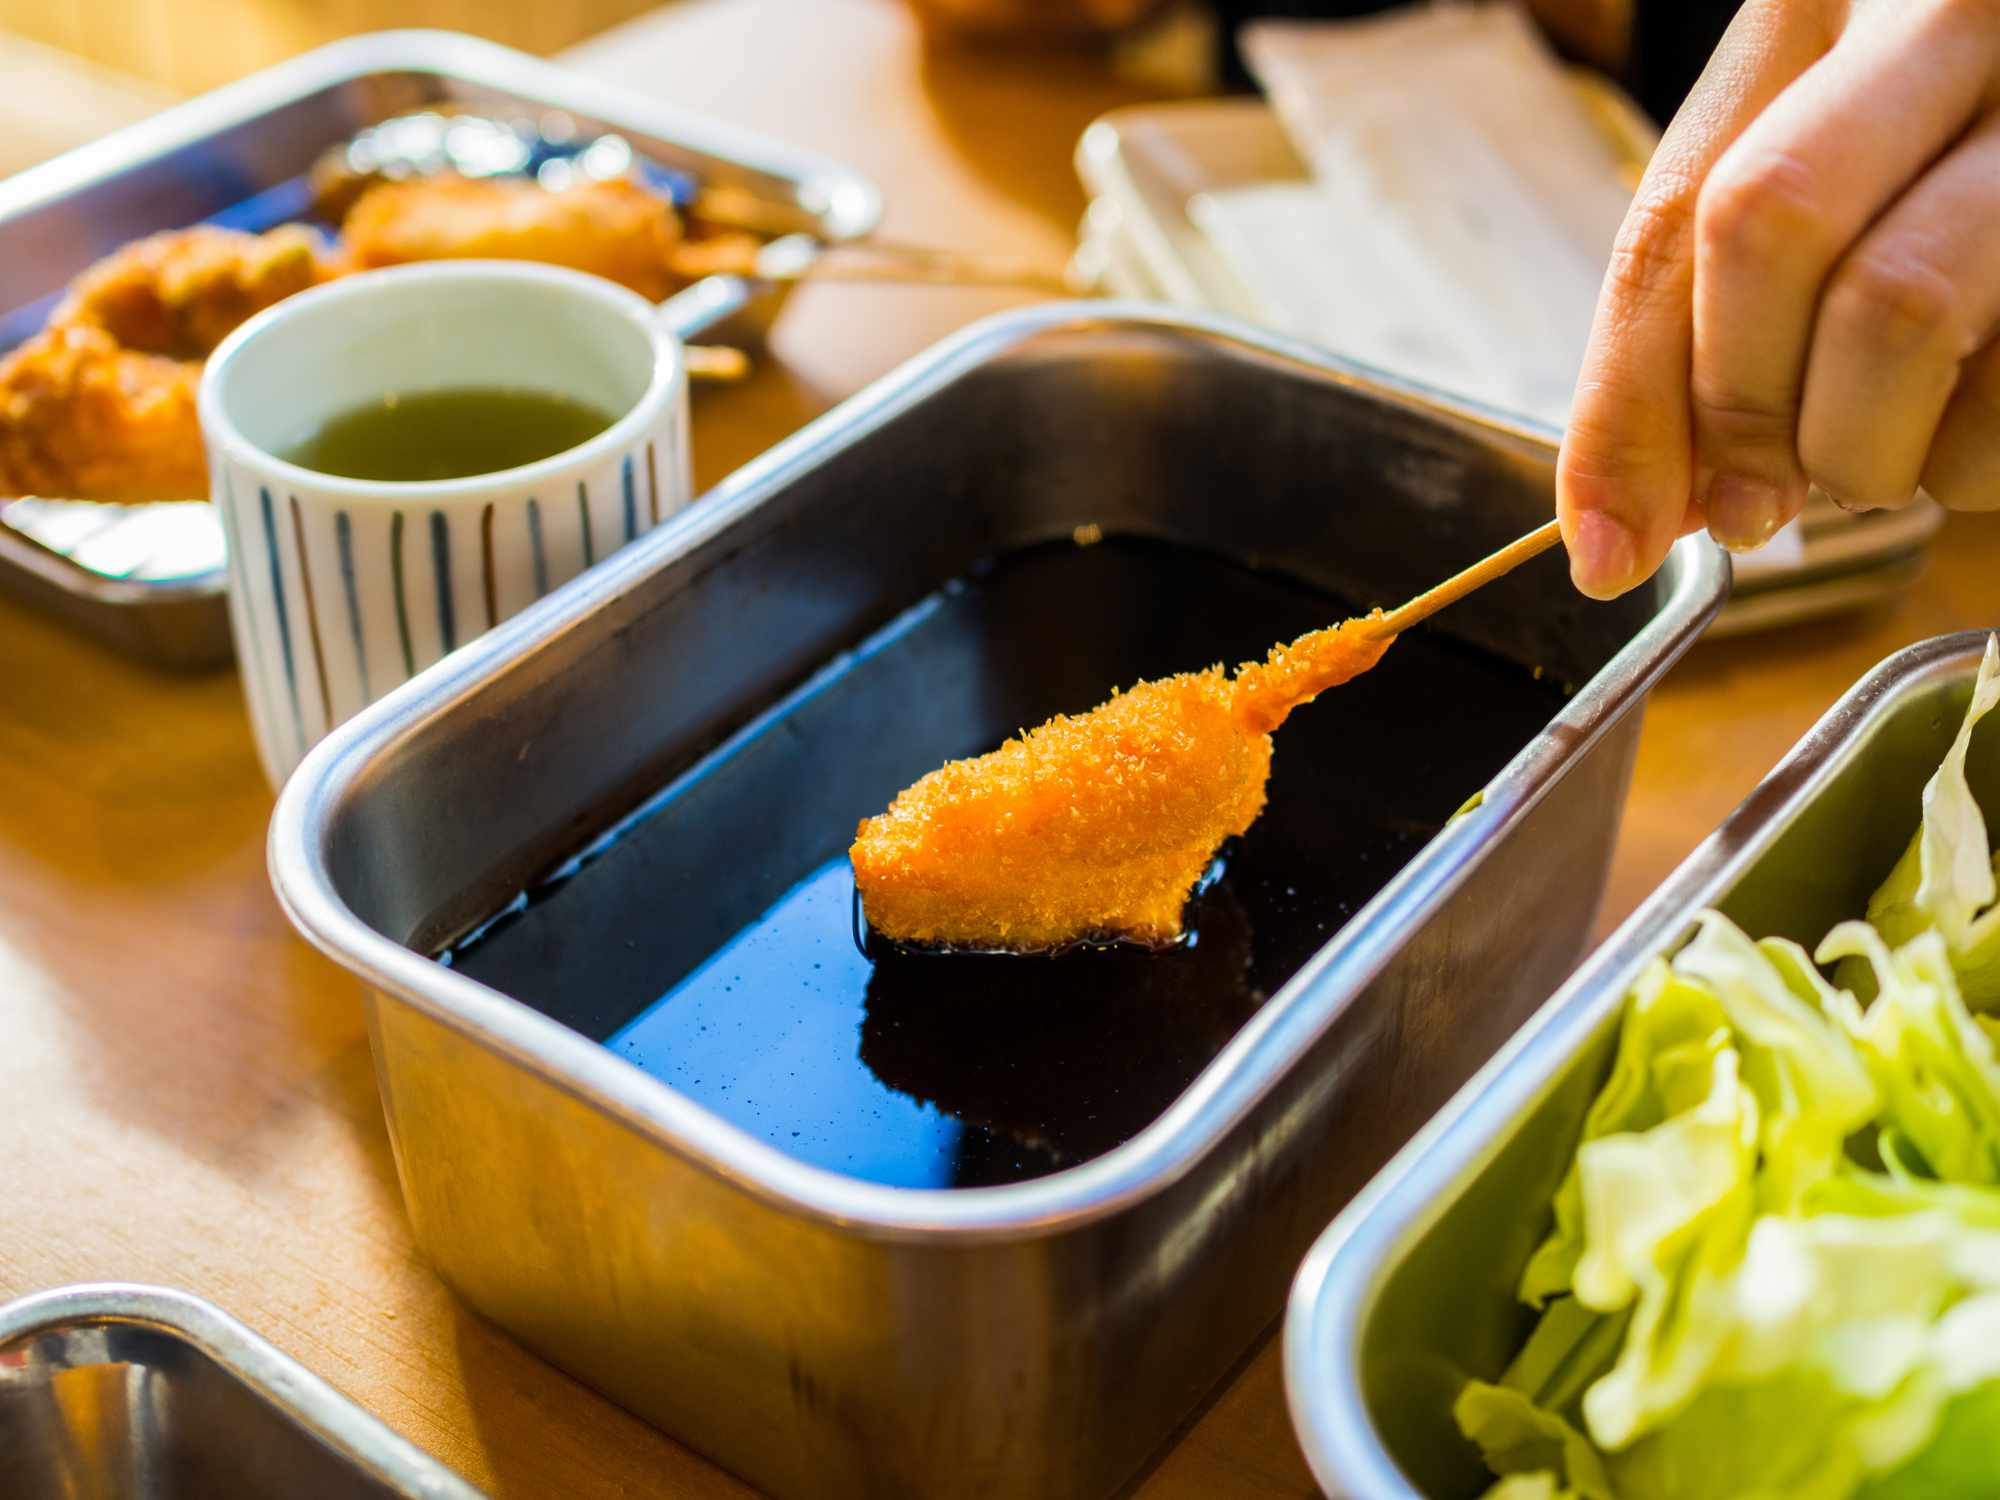 hand dipping a fried skewer into a metal container of a dark sauce